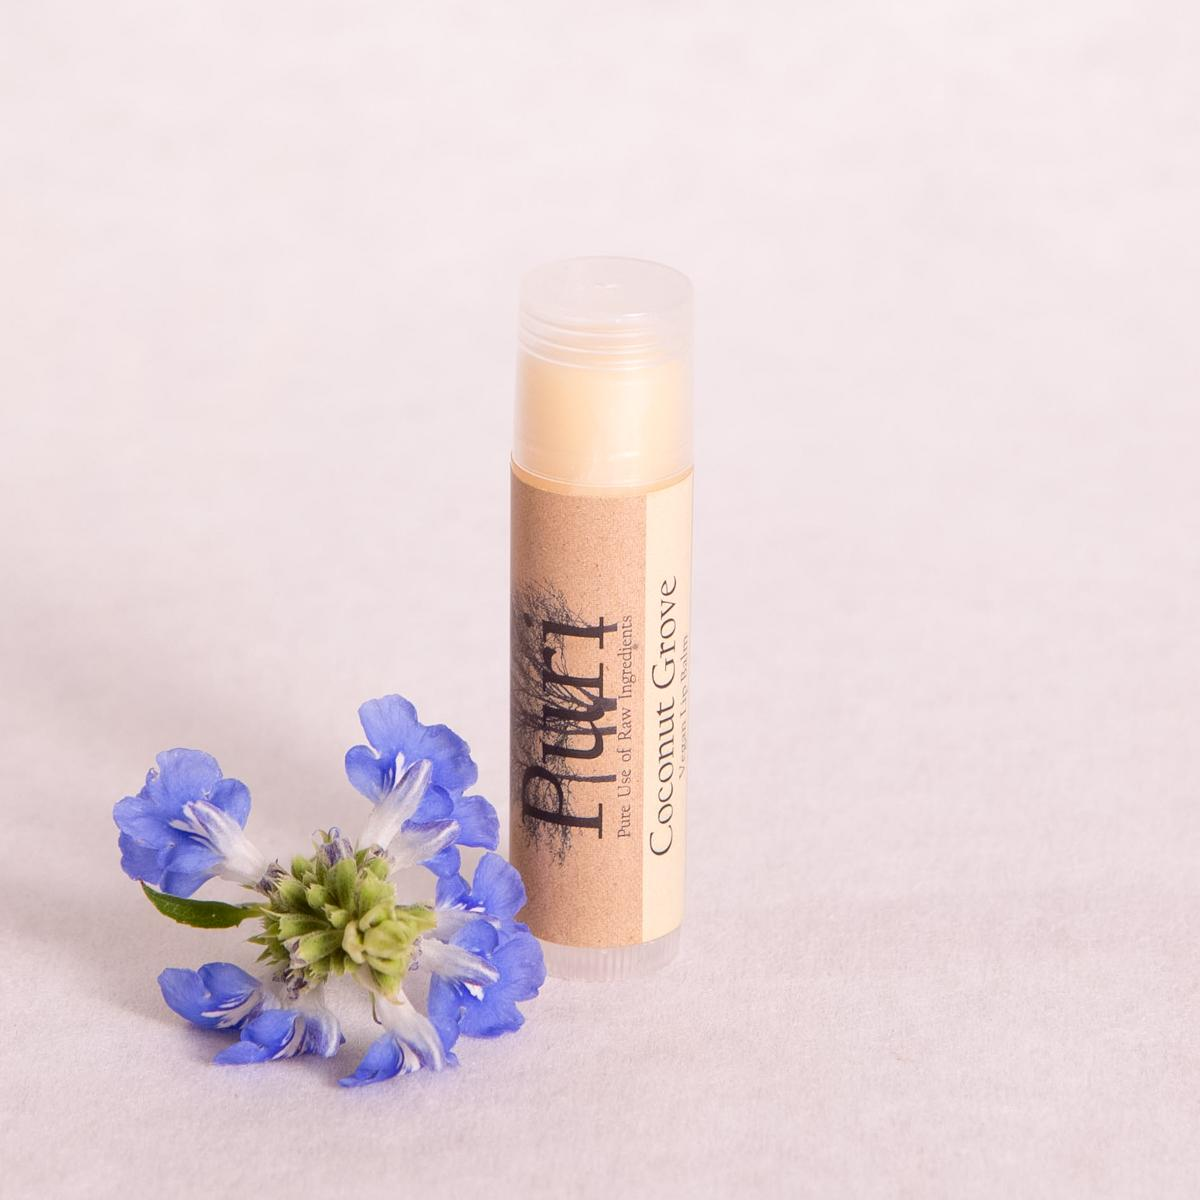 'Coconut Grove' Natural Lip Balm - 5ml - Lip Balm - Throw Some Seeds - Australian gardening gifts and eco products online!